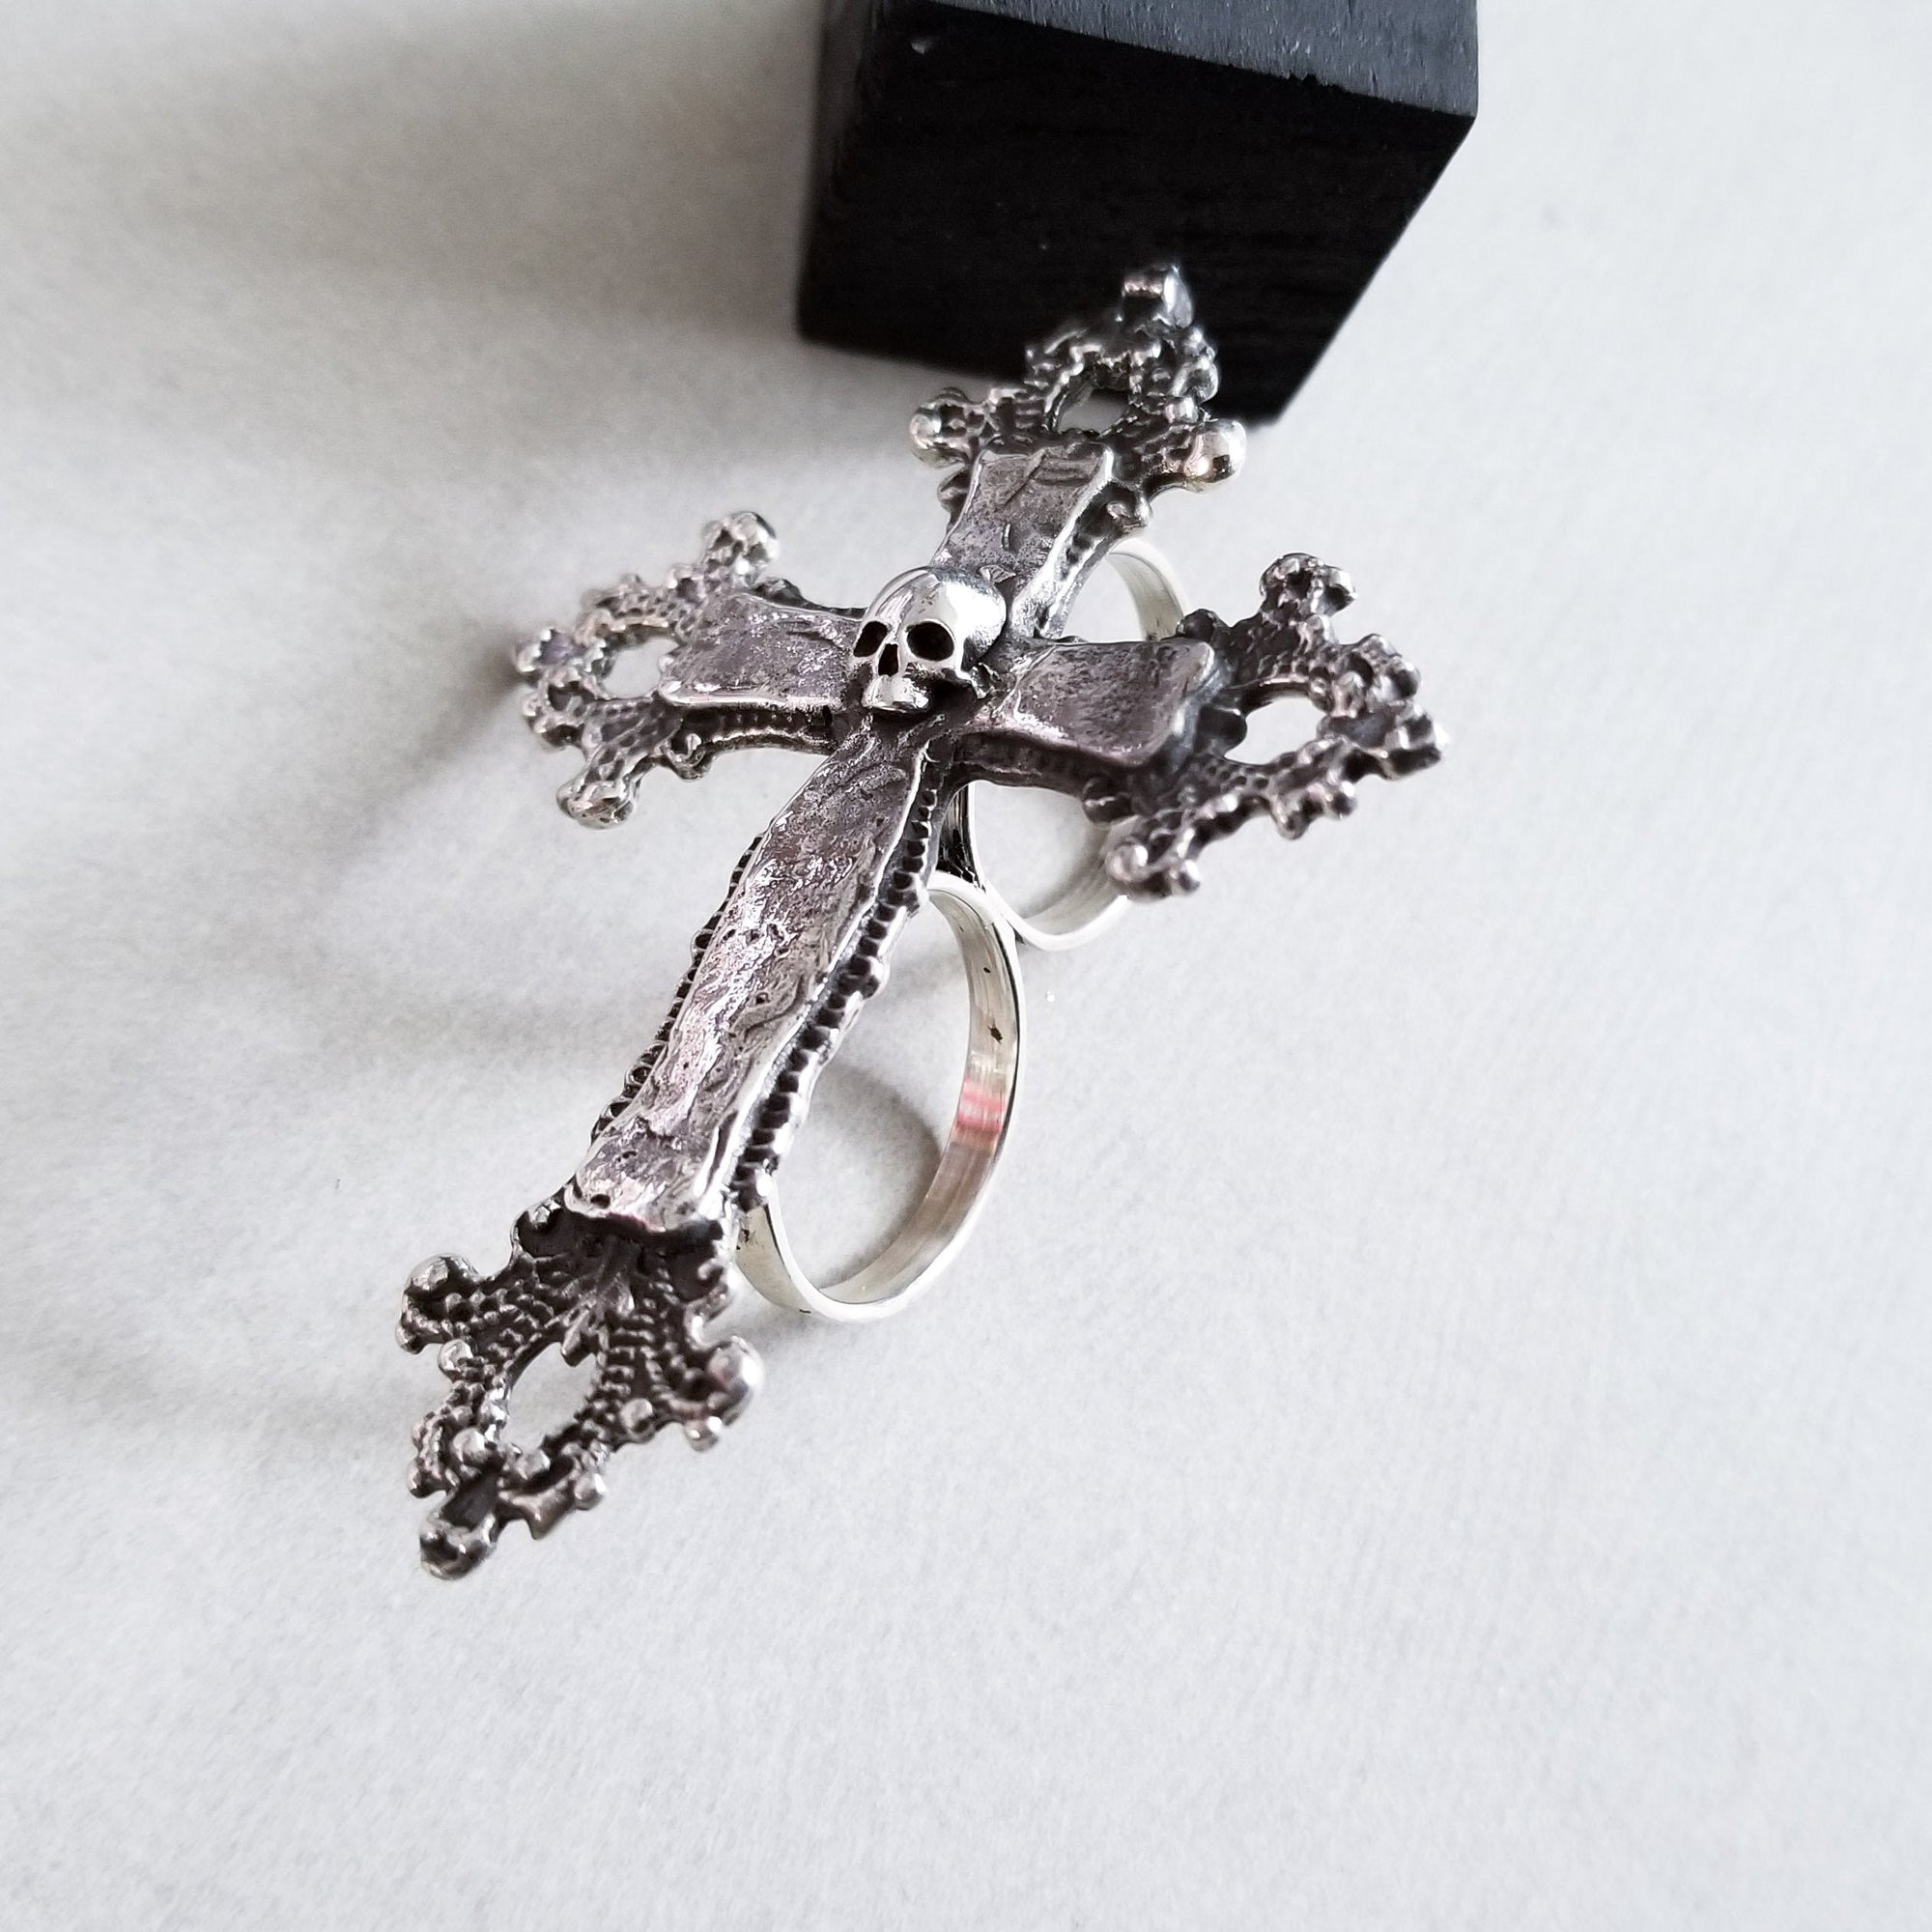 Big Unisex 2 Finger Skull Baroque Cross Ring - Inchoo Bijoux